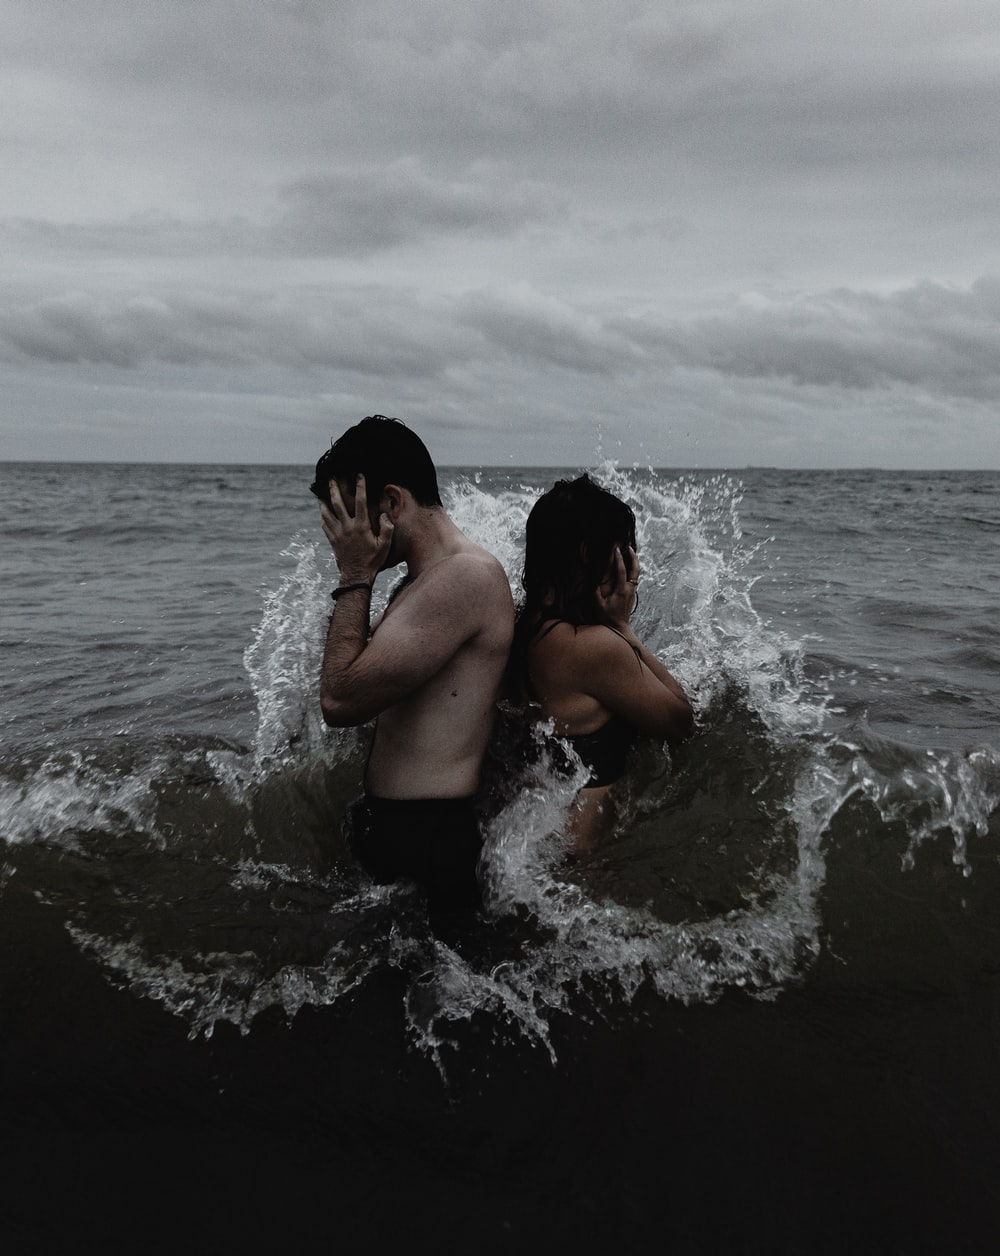 time lapse photography of couple standing on body of water